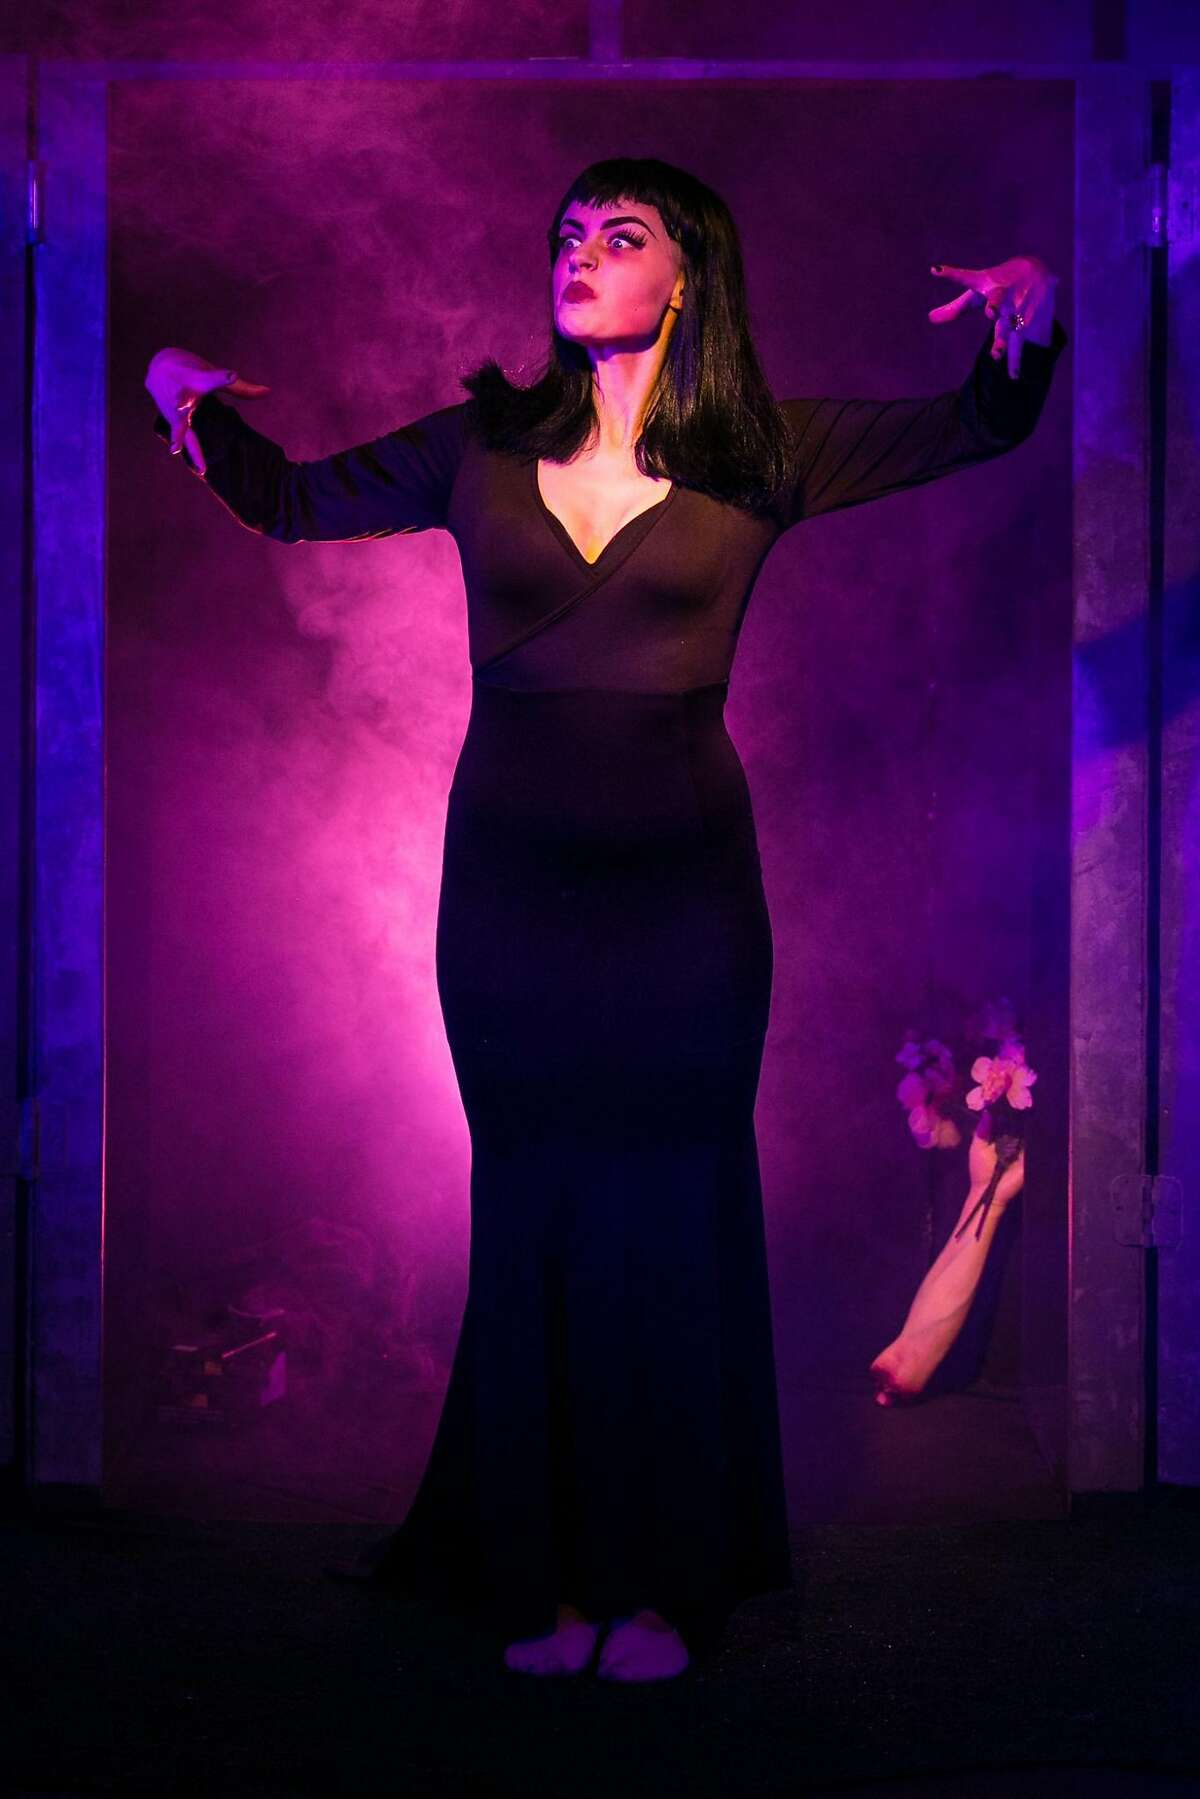 Vampira (Sarah Coykendall) is a zombie reanimated by aliens in anattempt to destroy humanity.